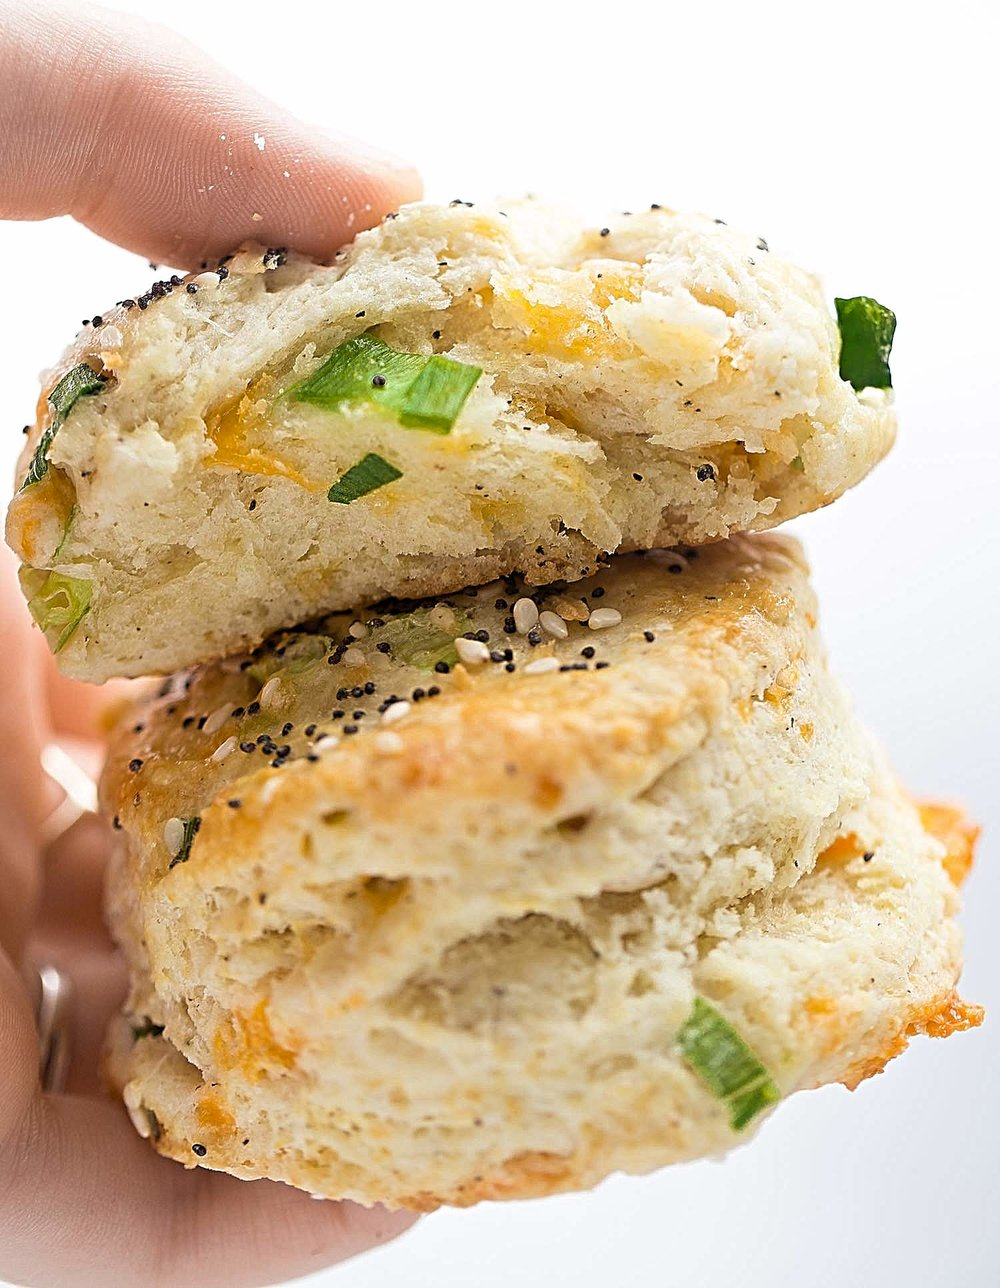 Green Onion Cheddar Scones: amazing, tender, buttery scones filled with green onions, cheddar cheese, and a sprinkling of black pepper. | TrufflesandTrends.com